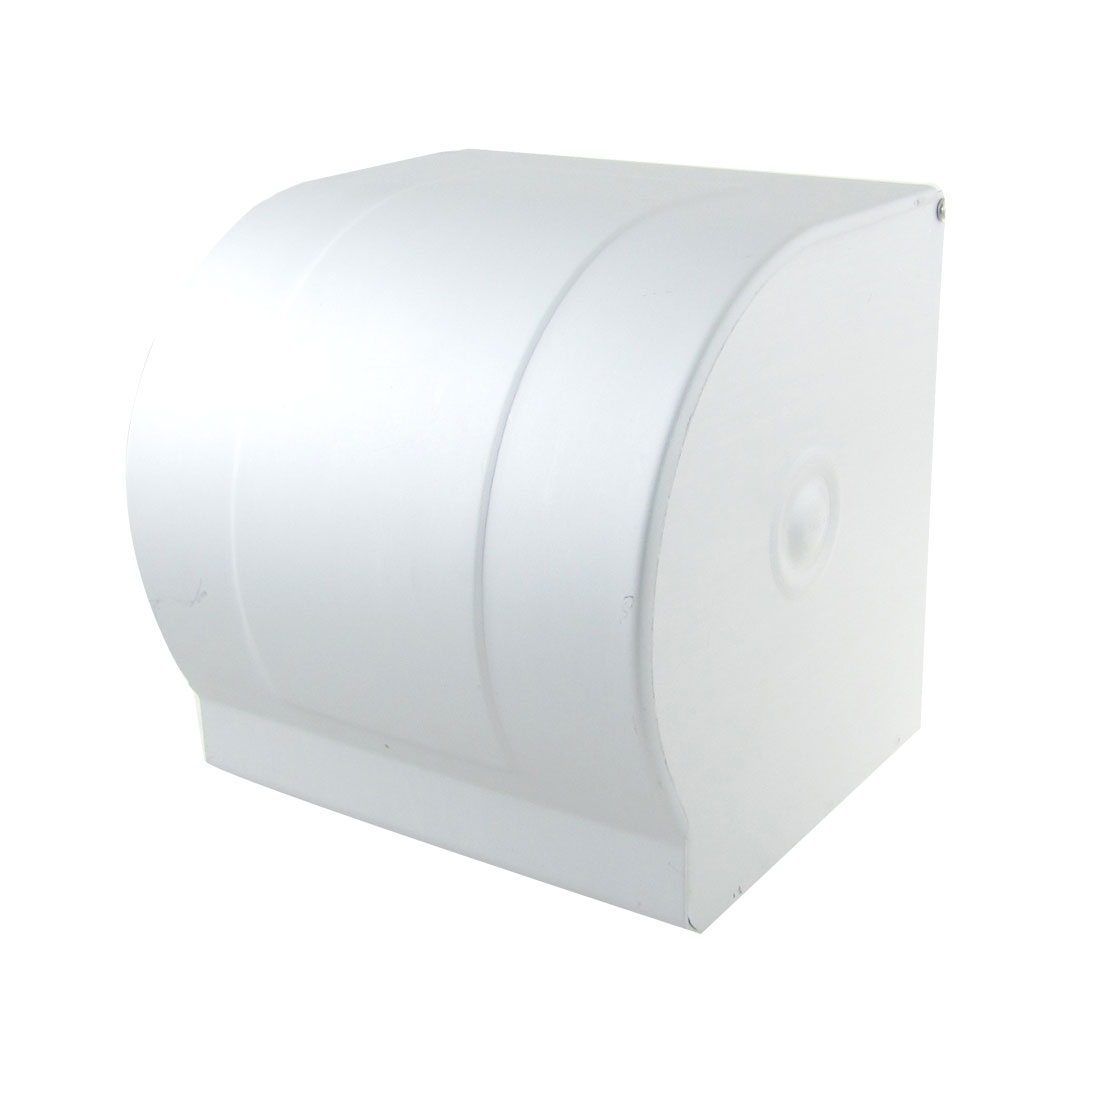 Sliver Tone Stainless Steel Plastic Scroll Toilet Paper Tissue Holder Box Cover